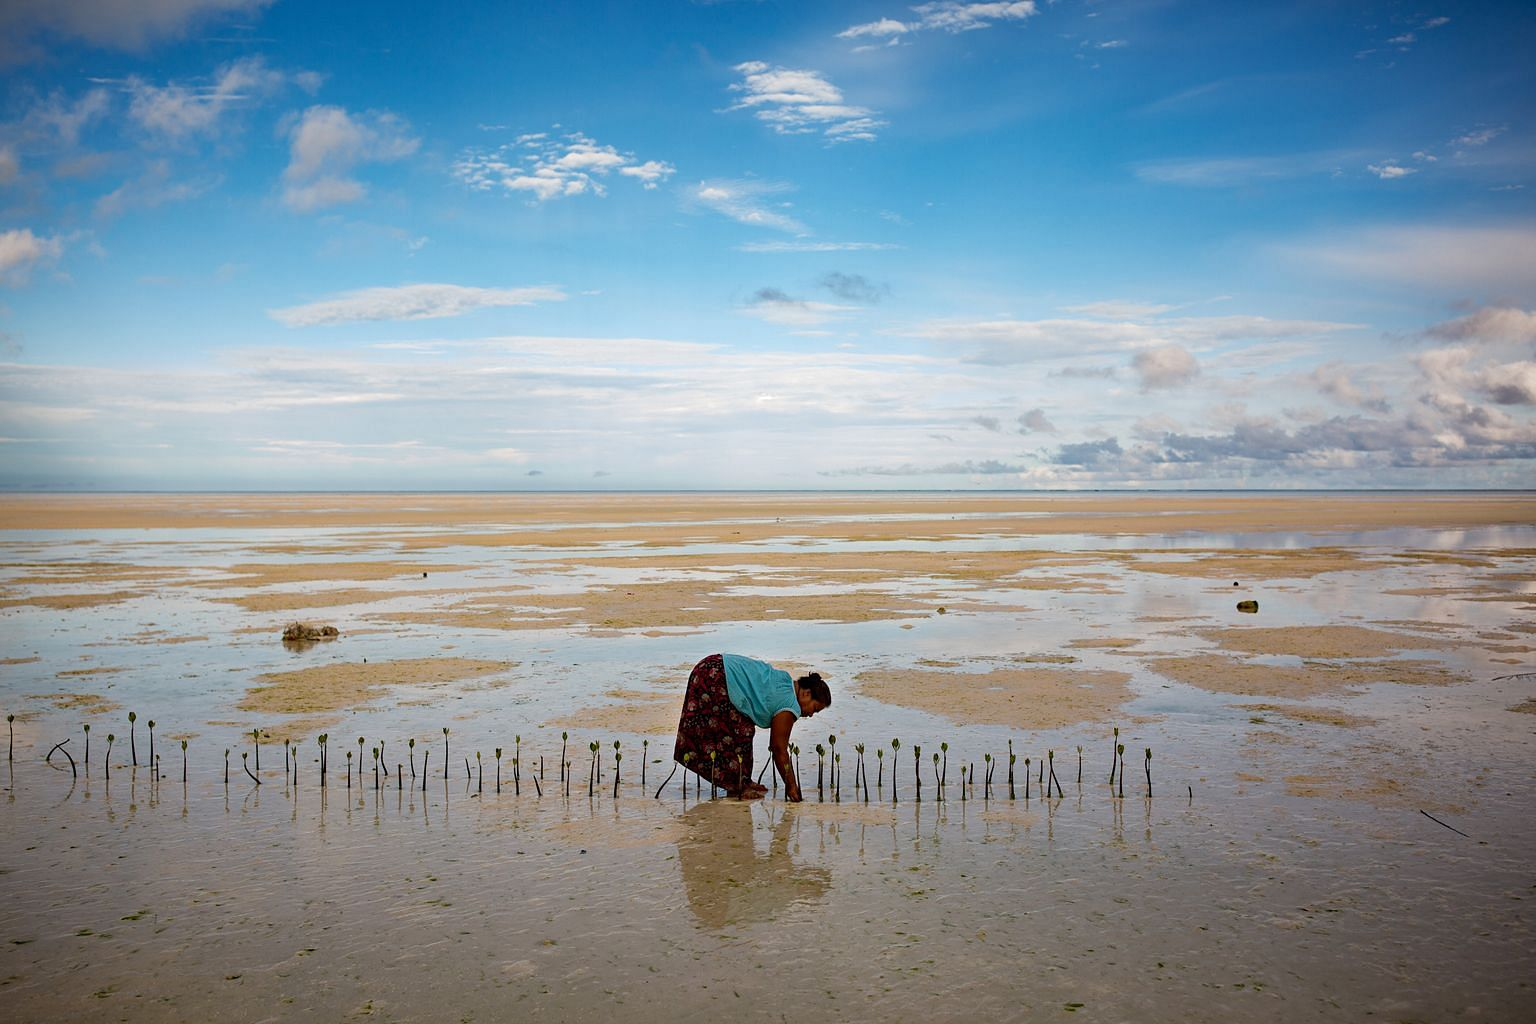 A villager tending to month-old mangrove trees that she planted to slow erosion in North Tarawa, Kiribati. Pacific island nations are among the world's most physically and economically vulnerable to climate change. Pastor Tean Rube of the Kiribati Un